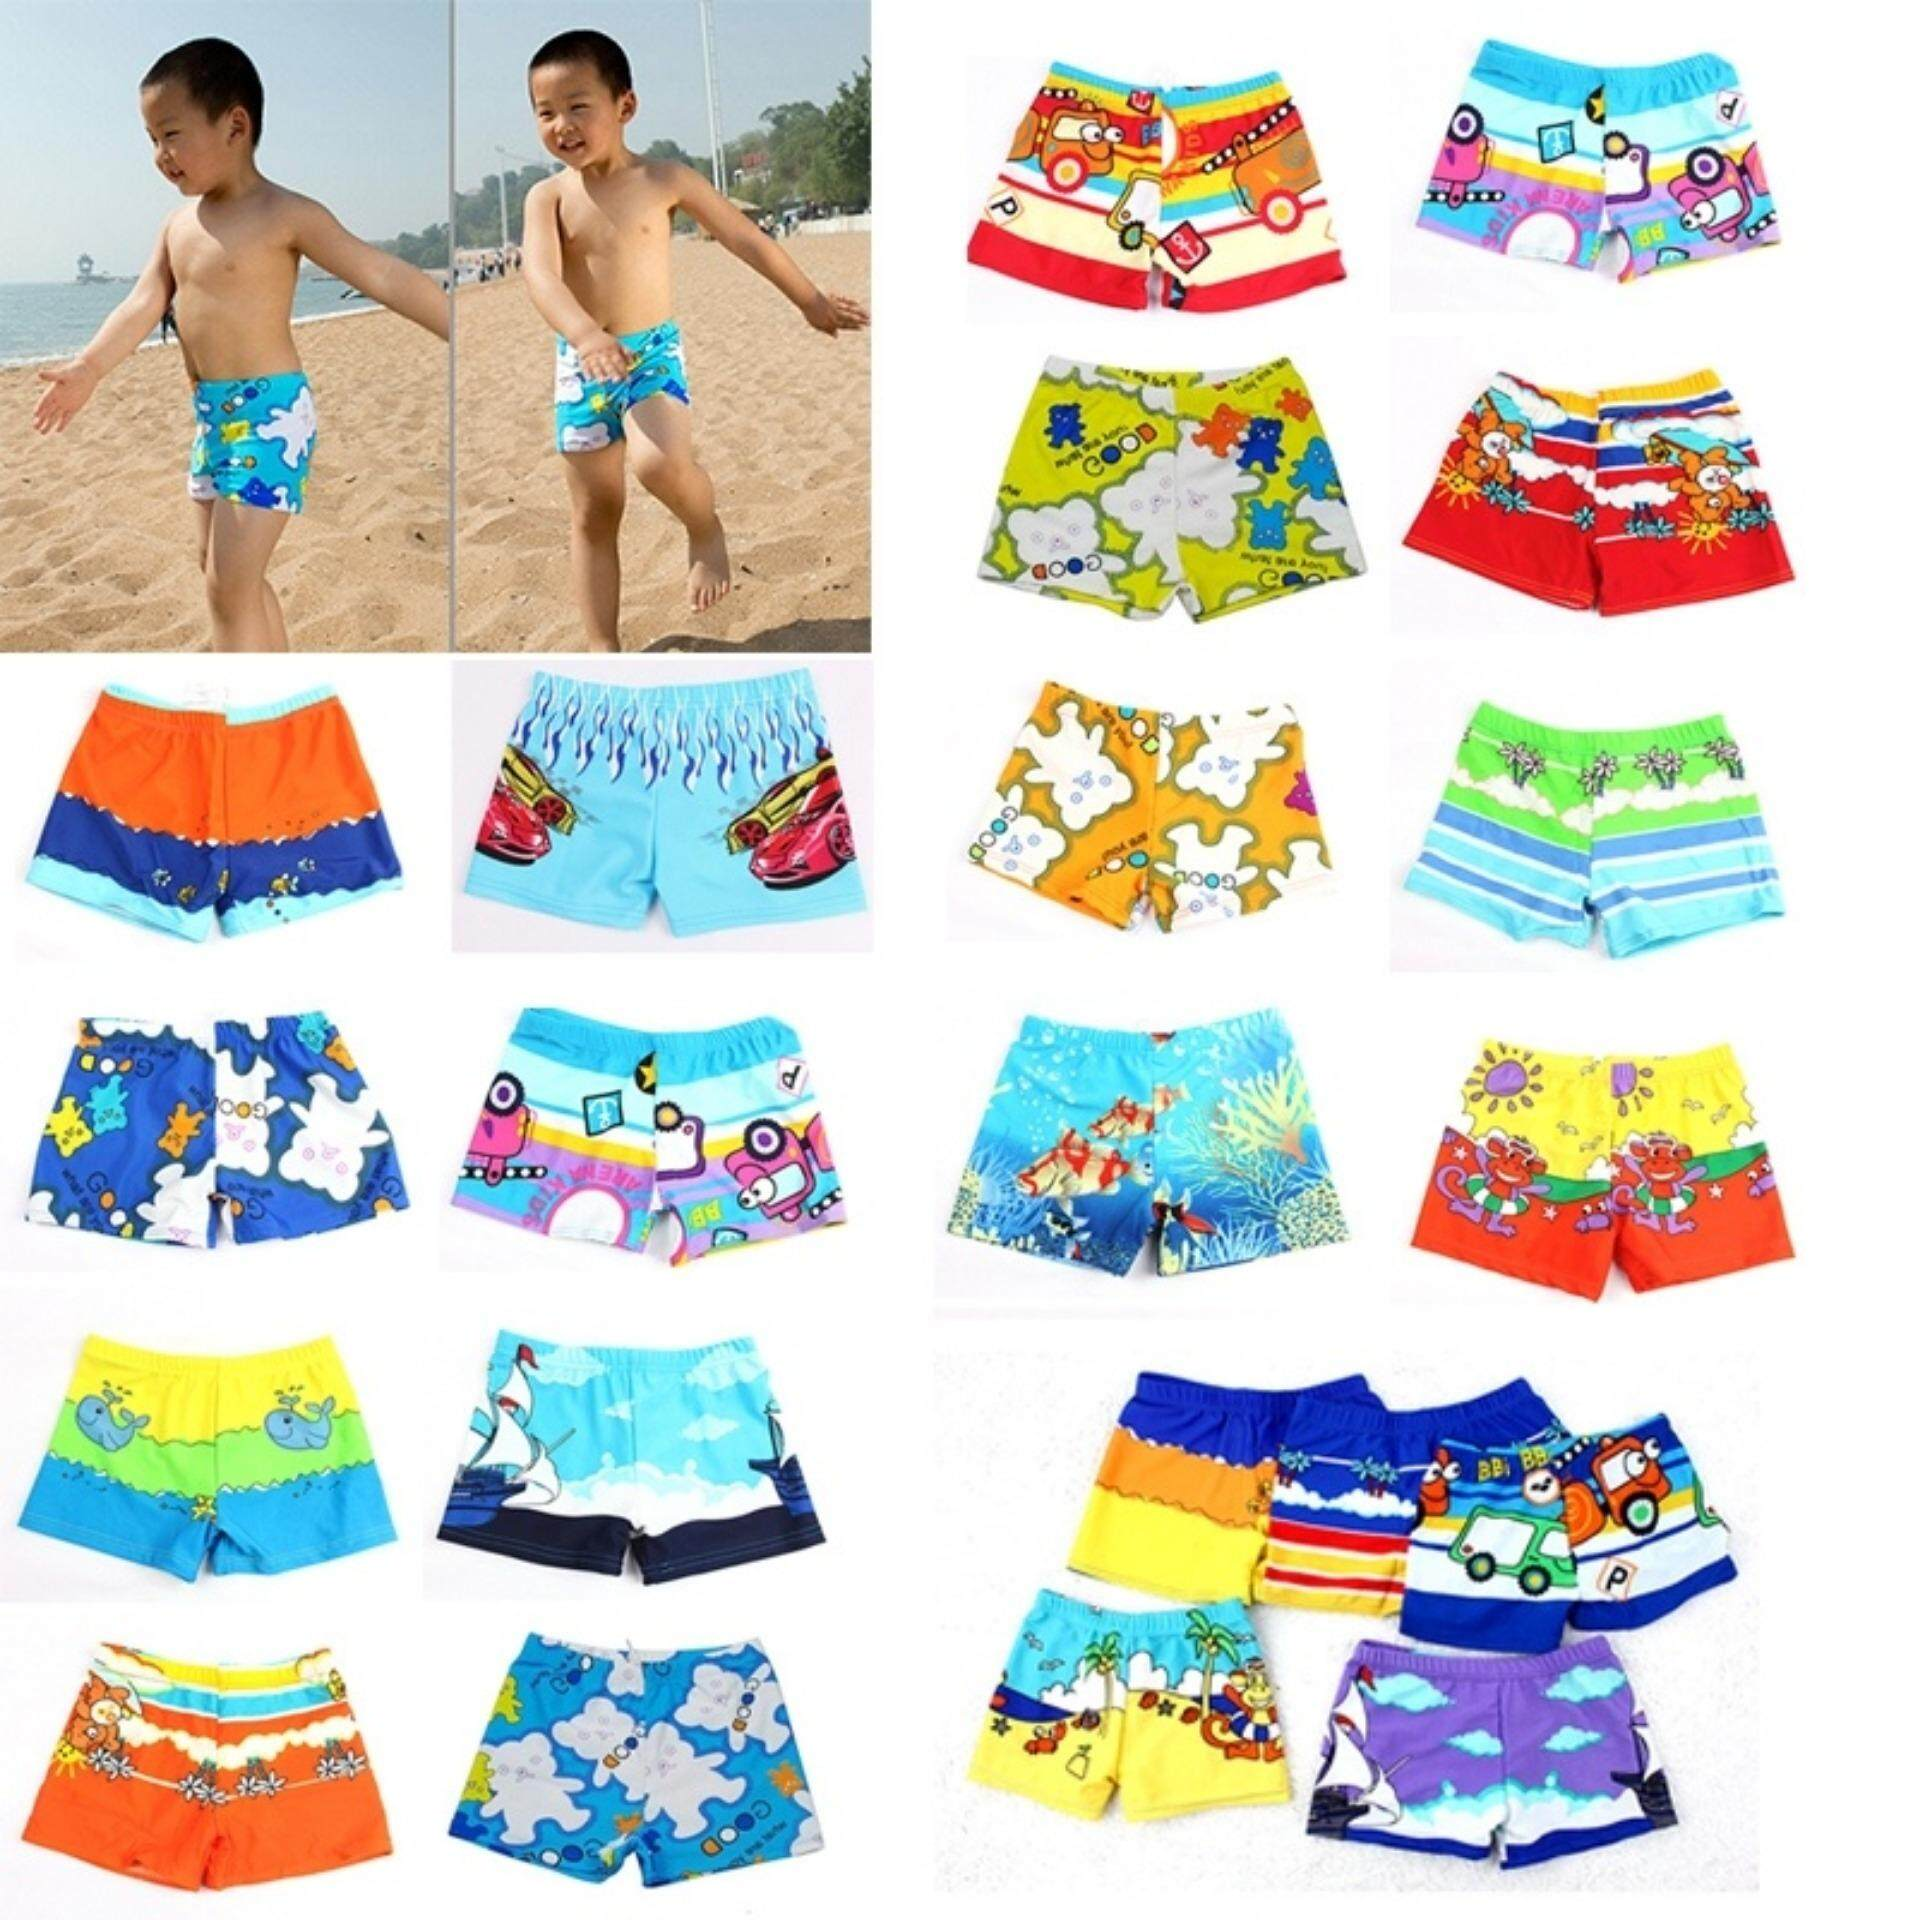 Baby Boy Swimwear Cartoon Pattern Surfing Swim Trunks For Kids Colors Random Extra Large - Intl By Fashionday.